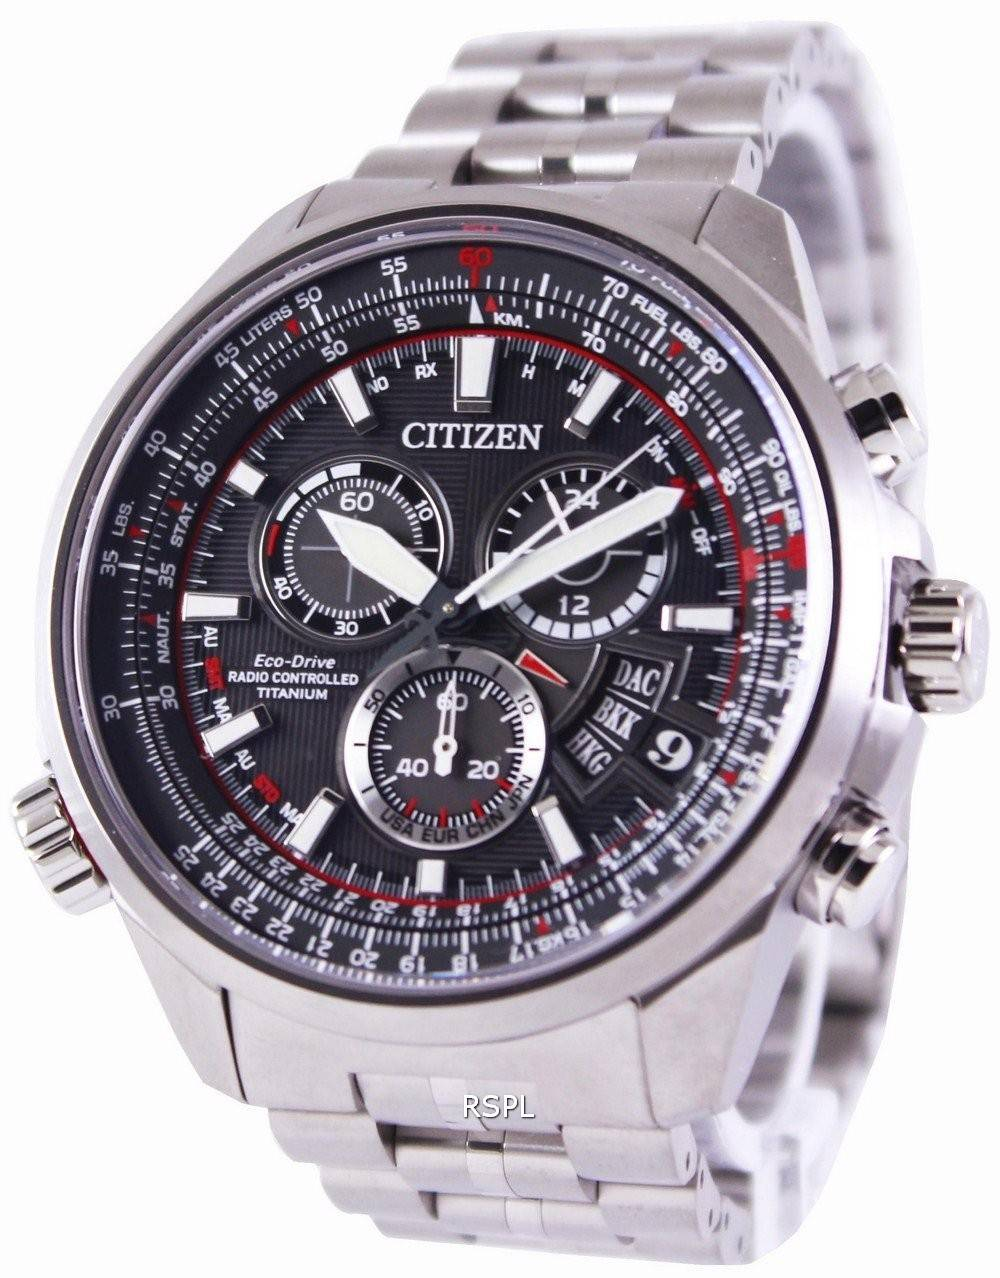 Orient Watch USA Coupon & Deal